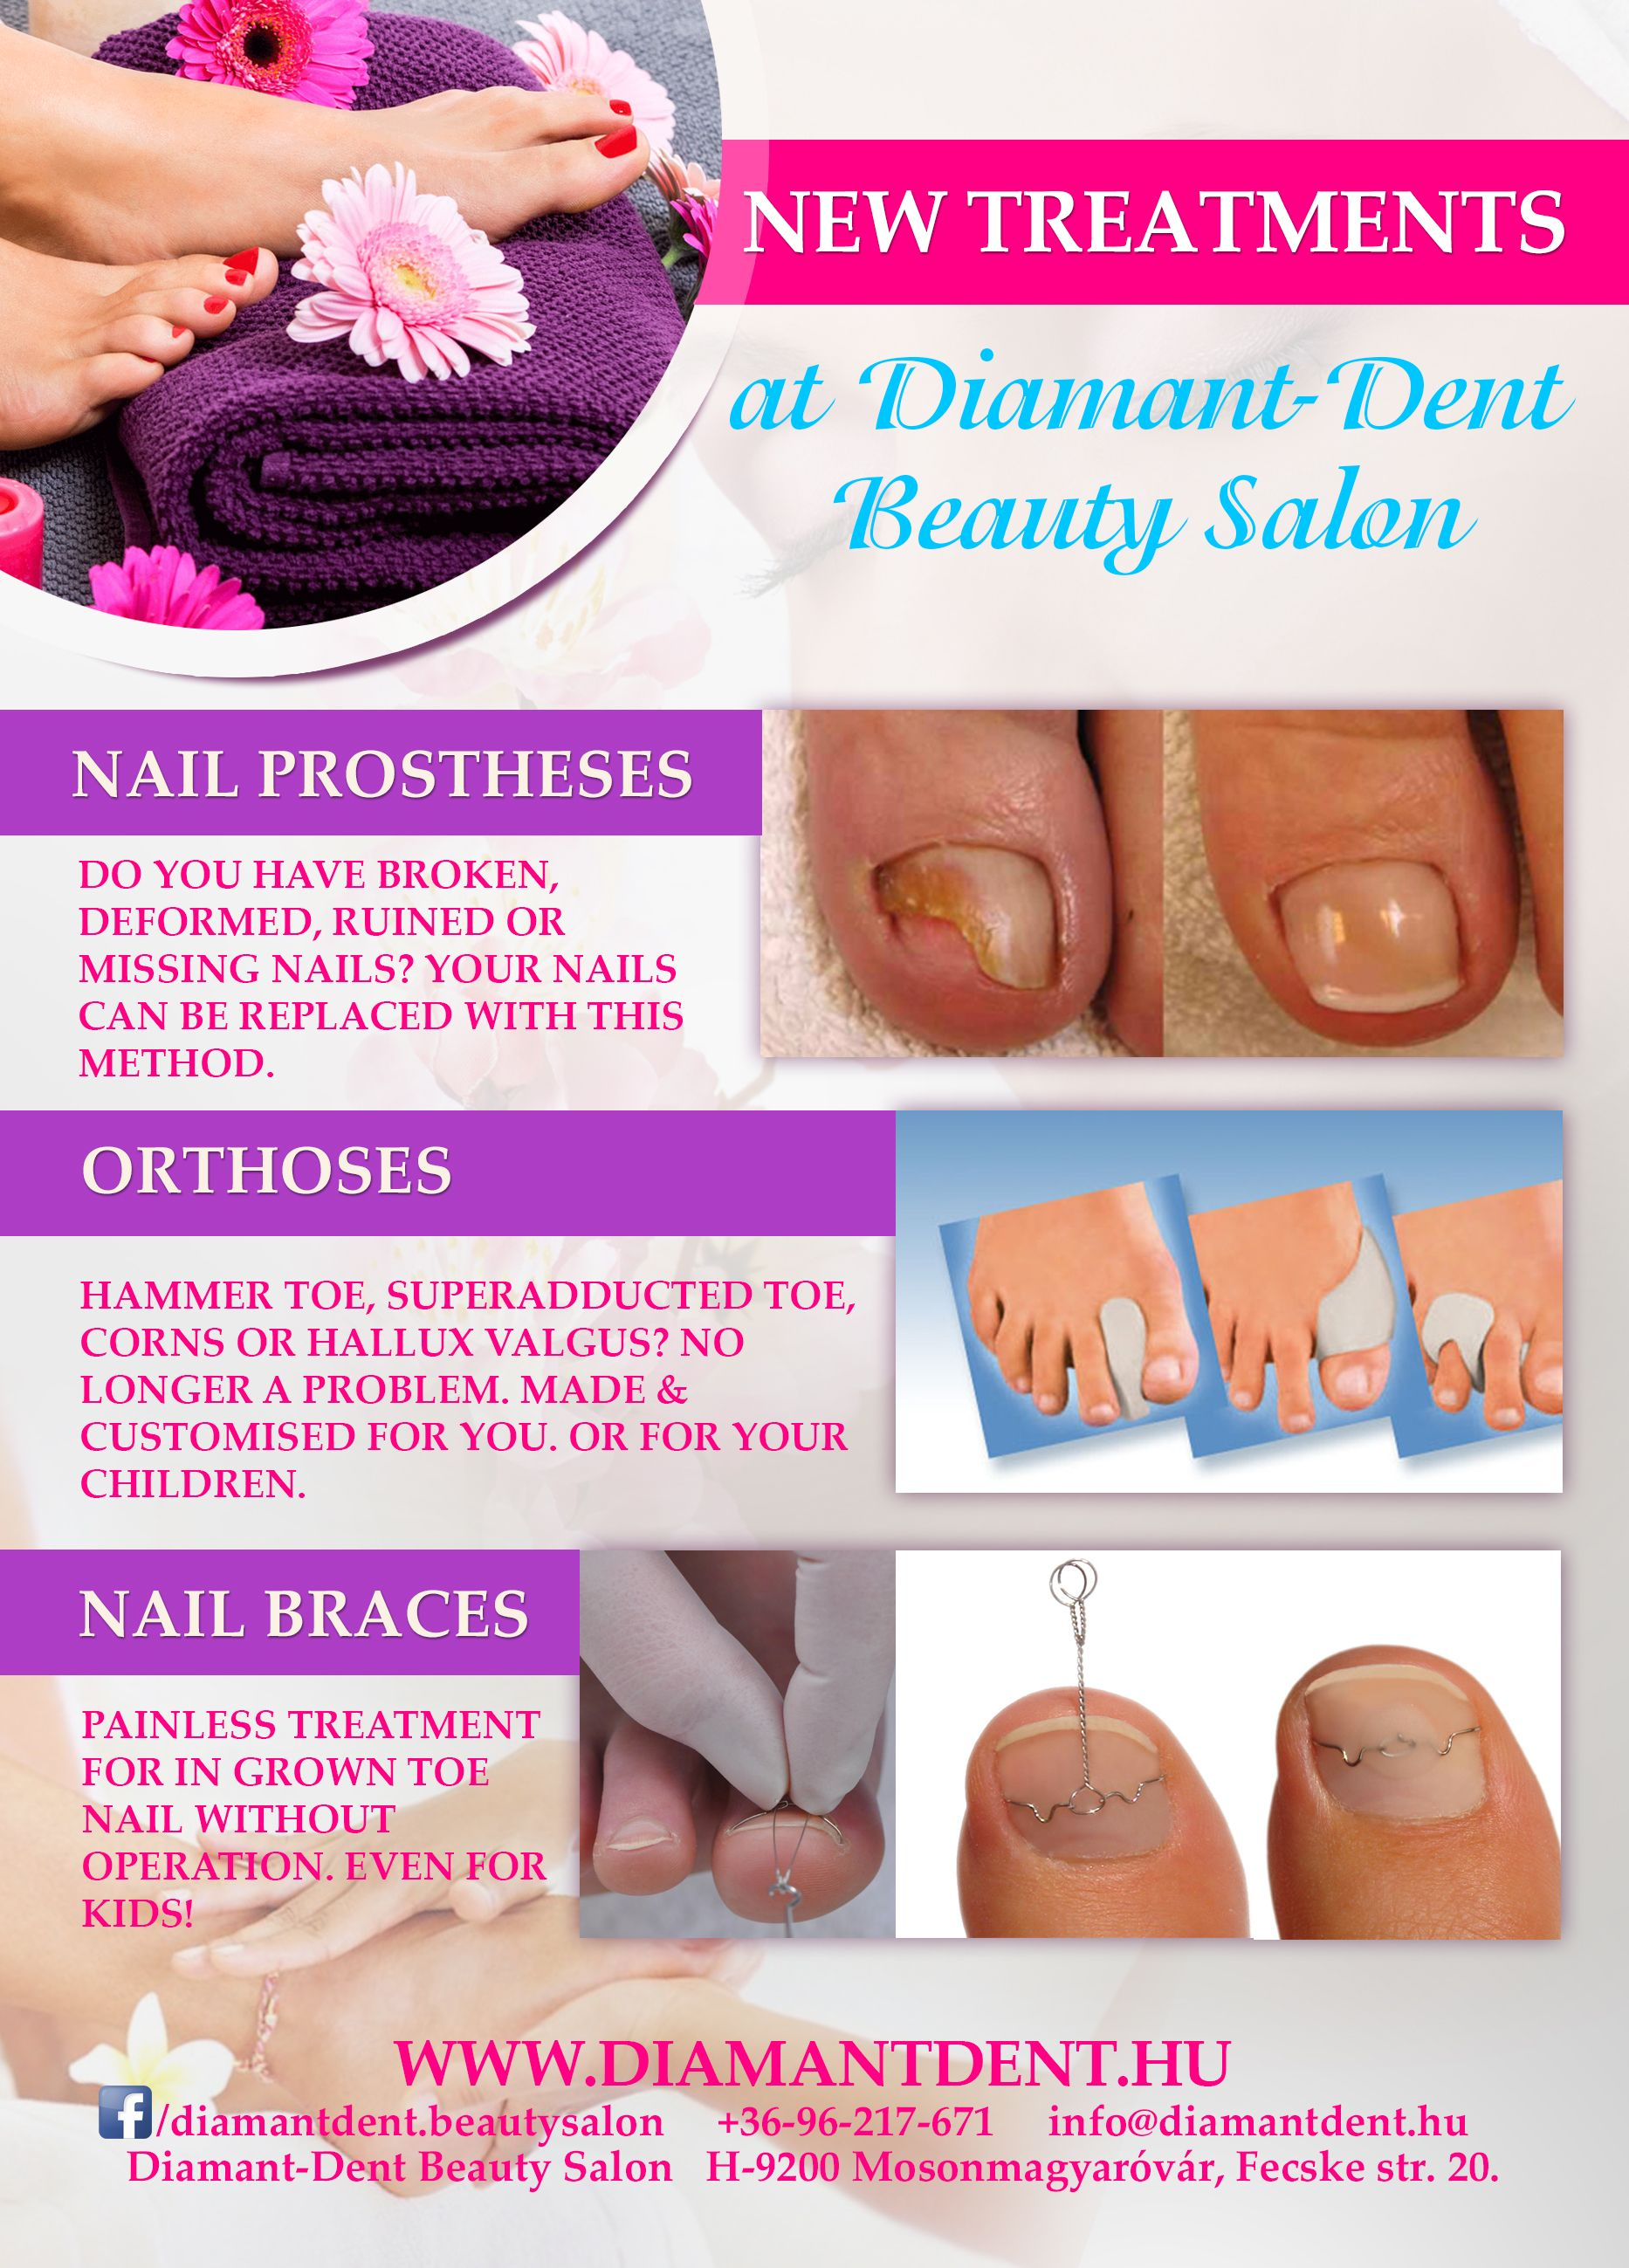 New treatments in Diamant Dent Beauty Salon | Actions | Pinterest